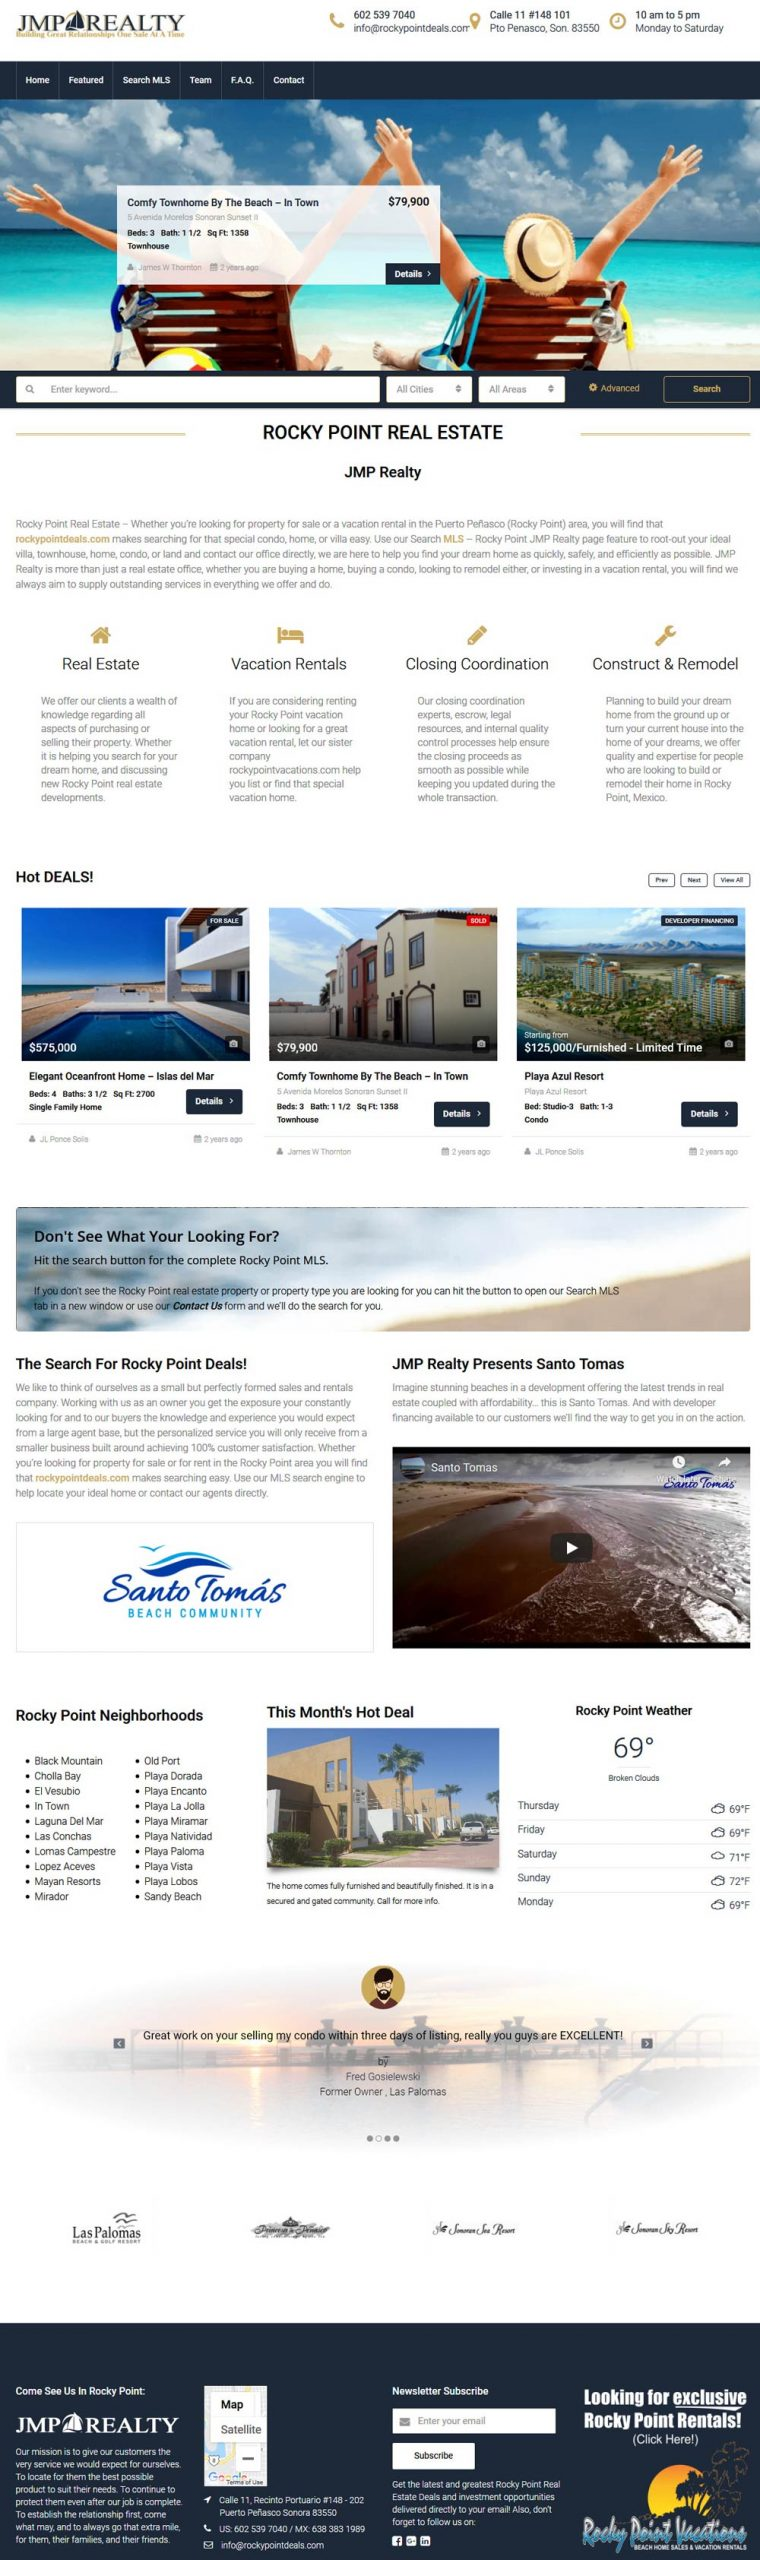 Website for JMP realty in Puerto Penasco (Rocky Point Mexico).